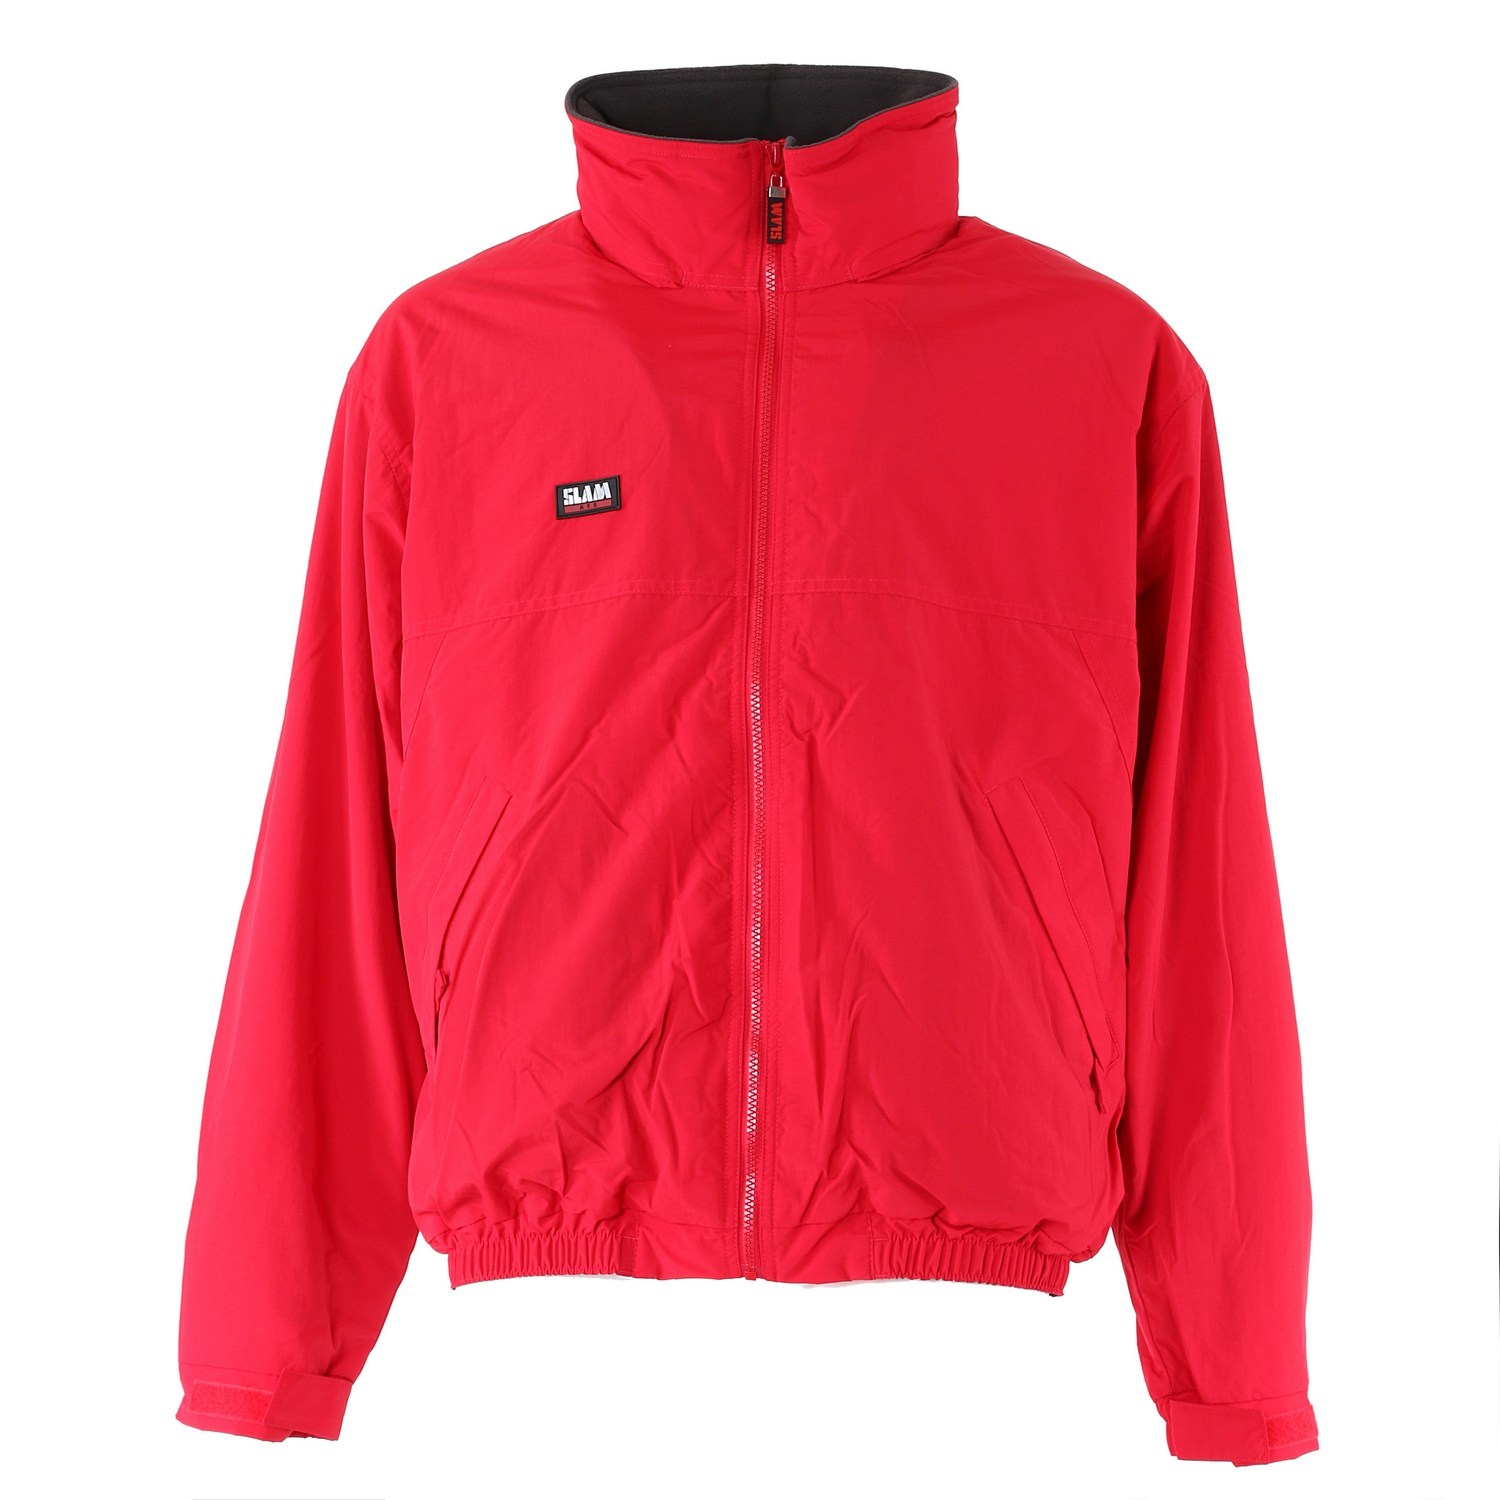 Winter Sailing jacket New - Slam Red